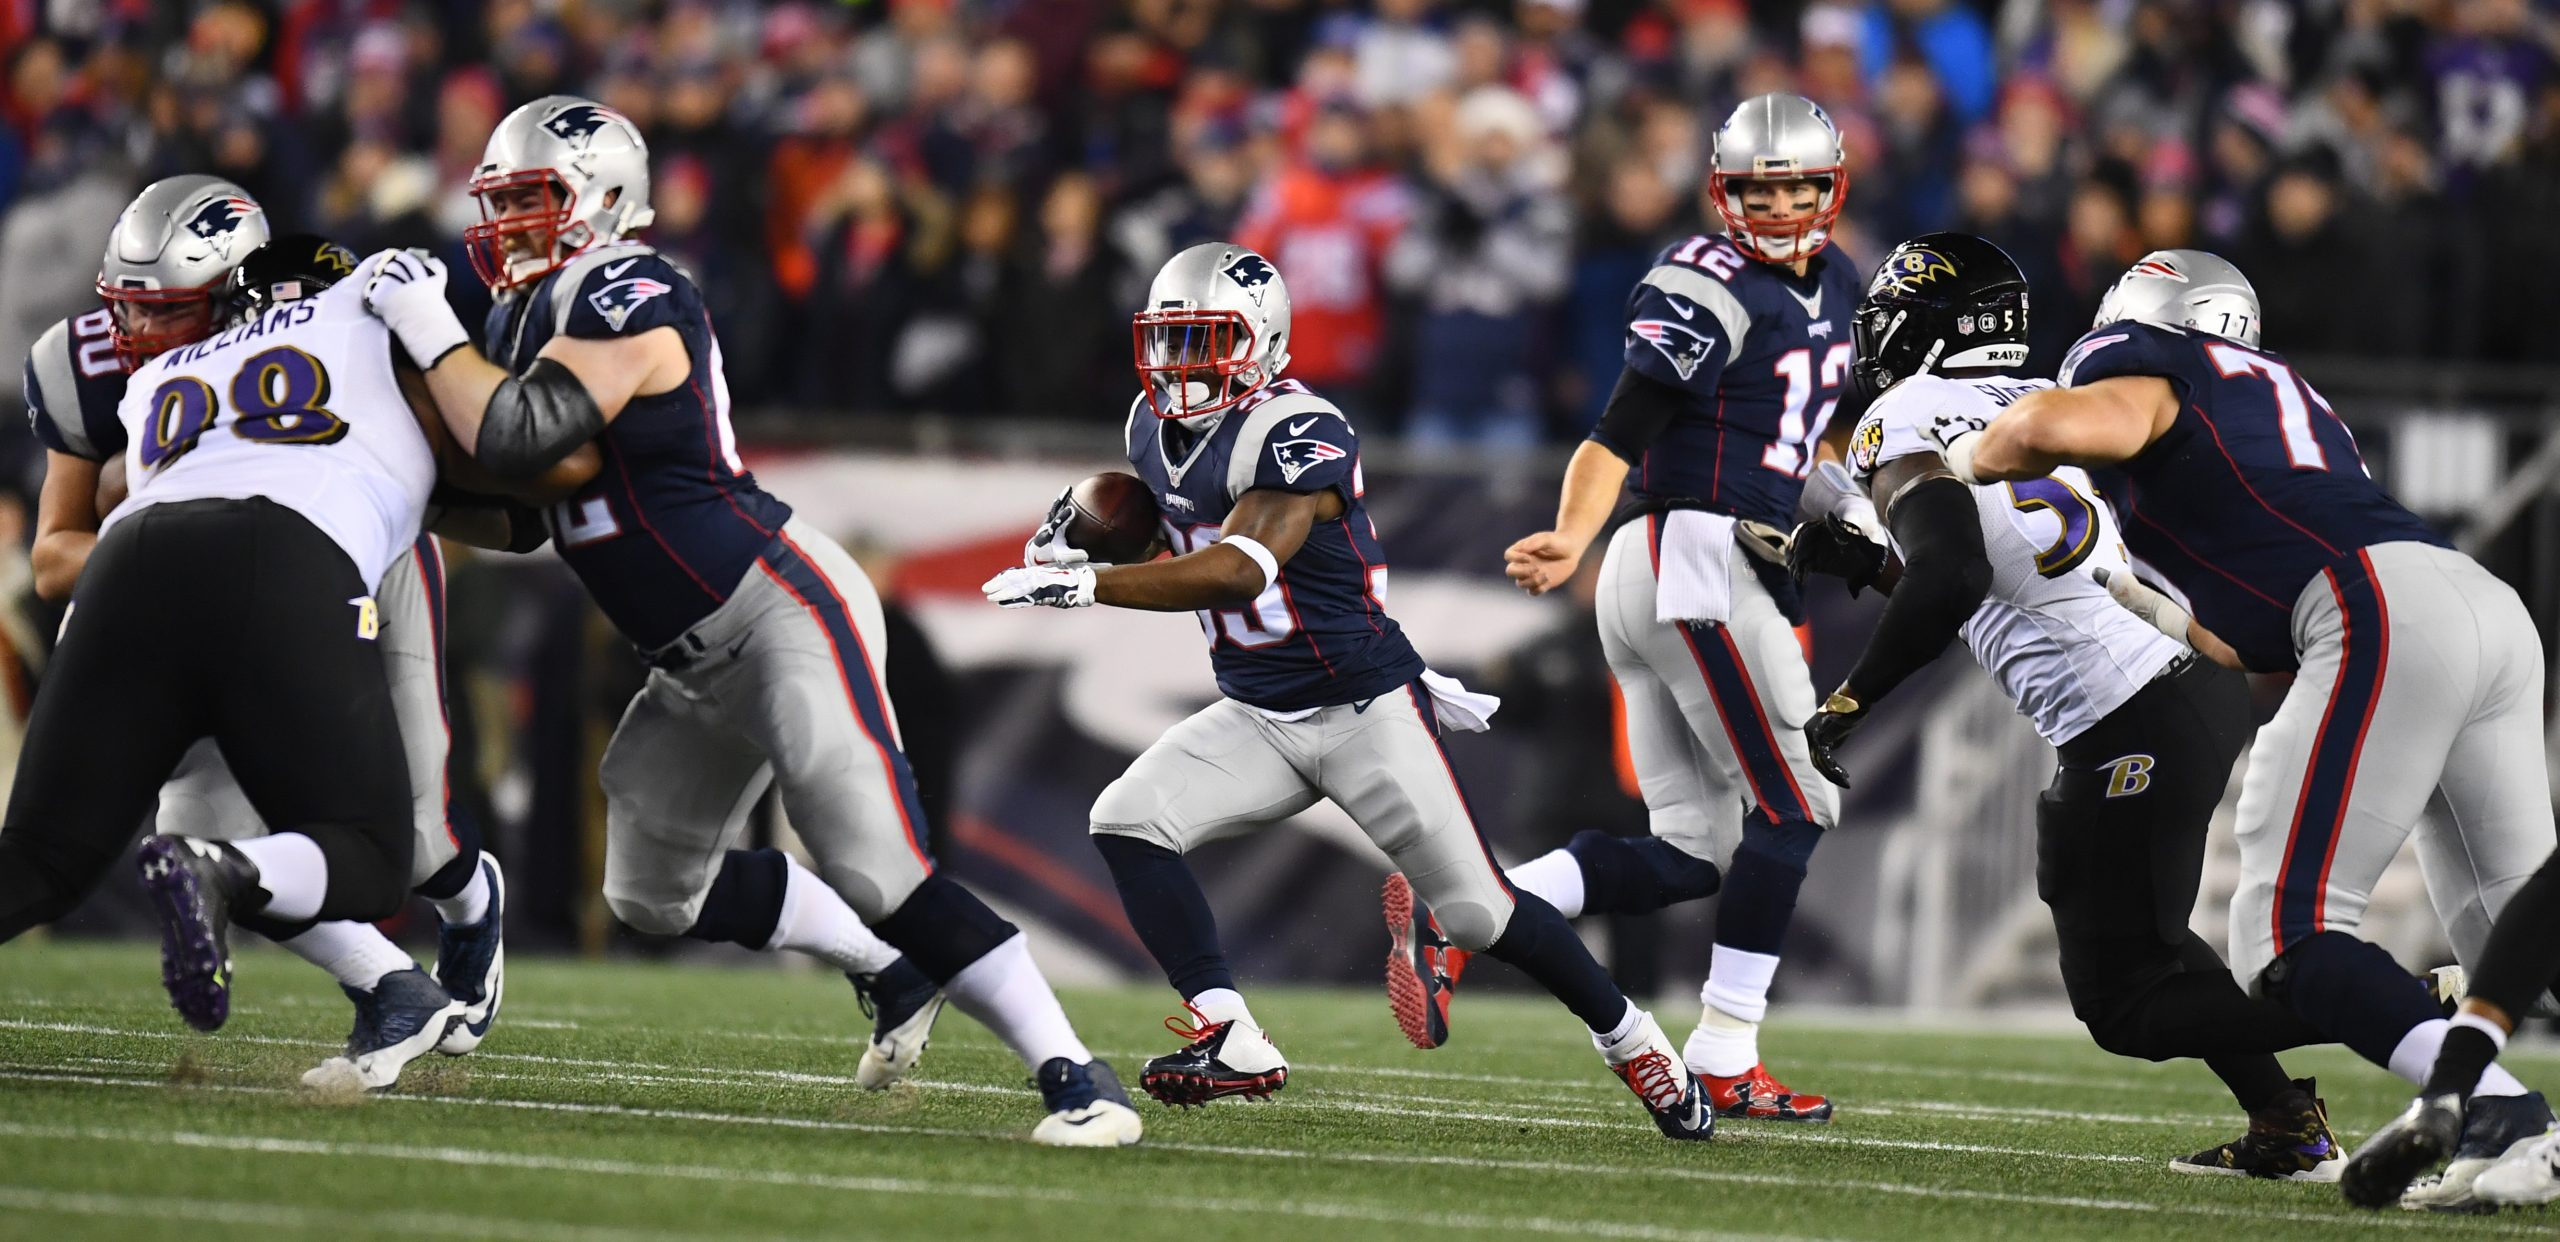 Foxborough-ma-december-12-2016-gillette-stadium-dion-lewis-33-of-the-new-england-patriots-during-a-regular-season-monday-night-football-game-photo-by-joe-faraoni-espn-images